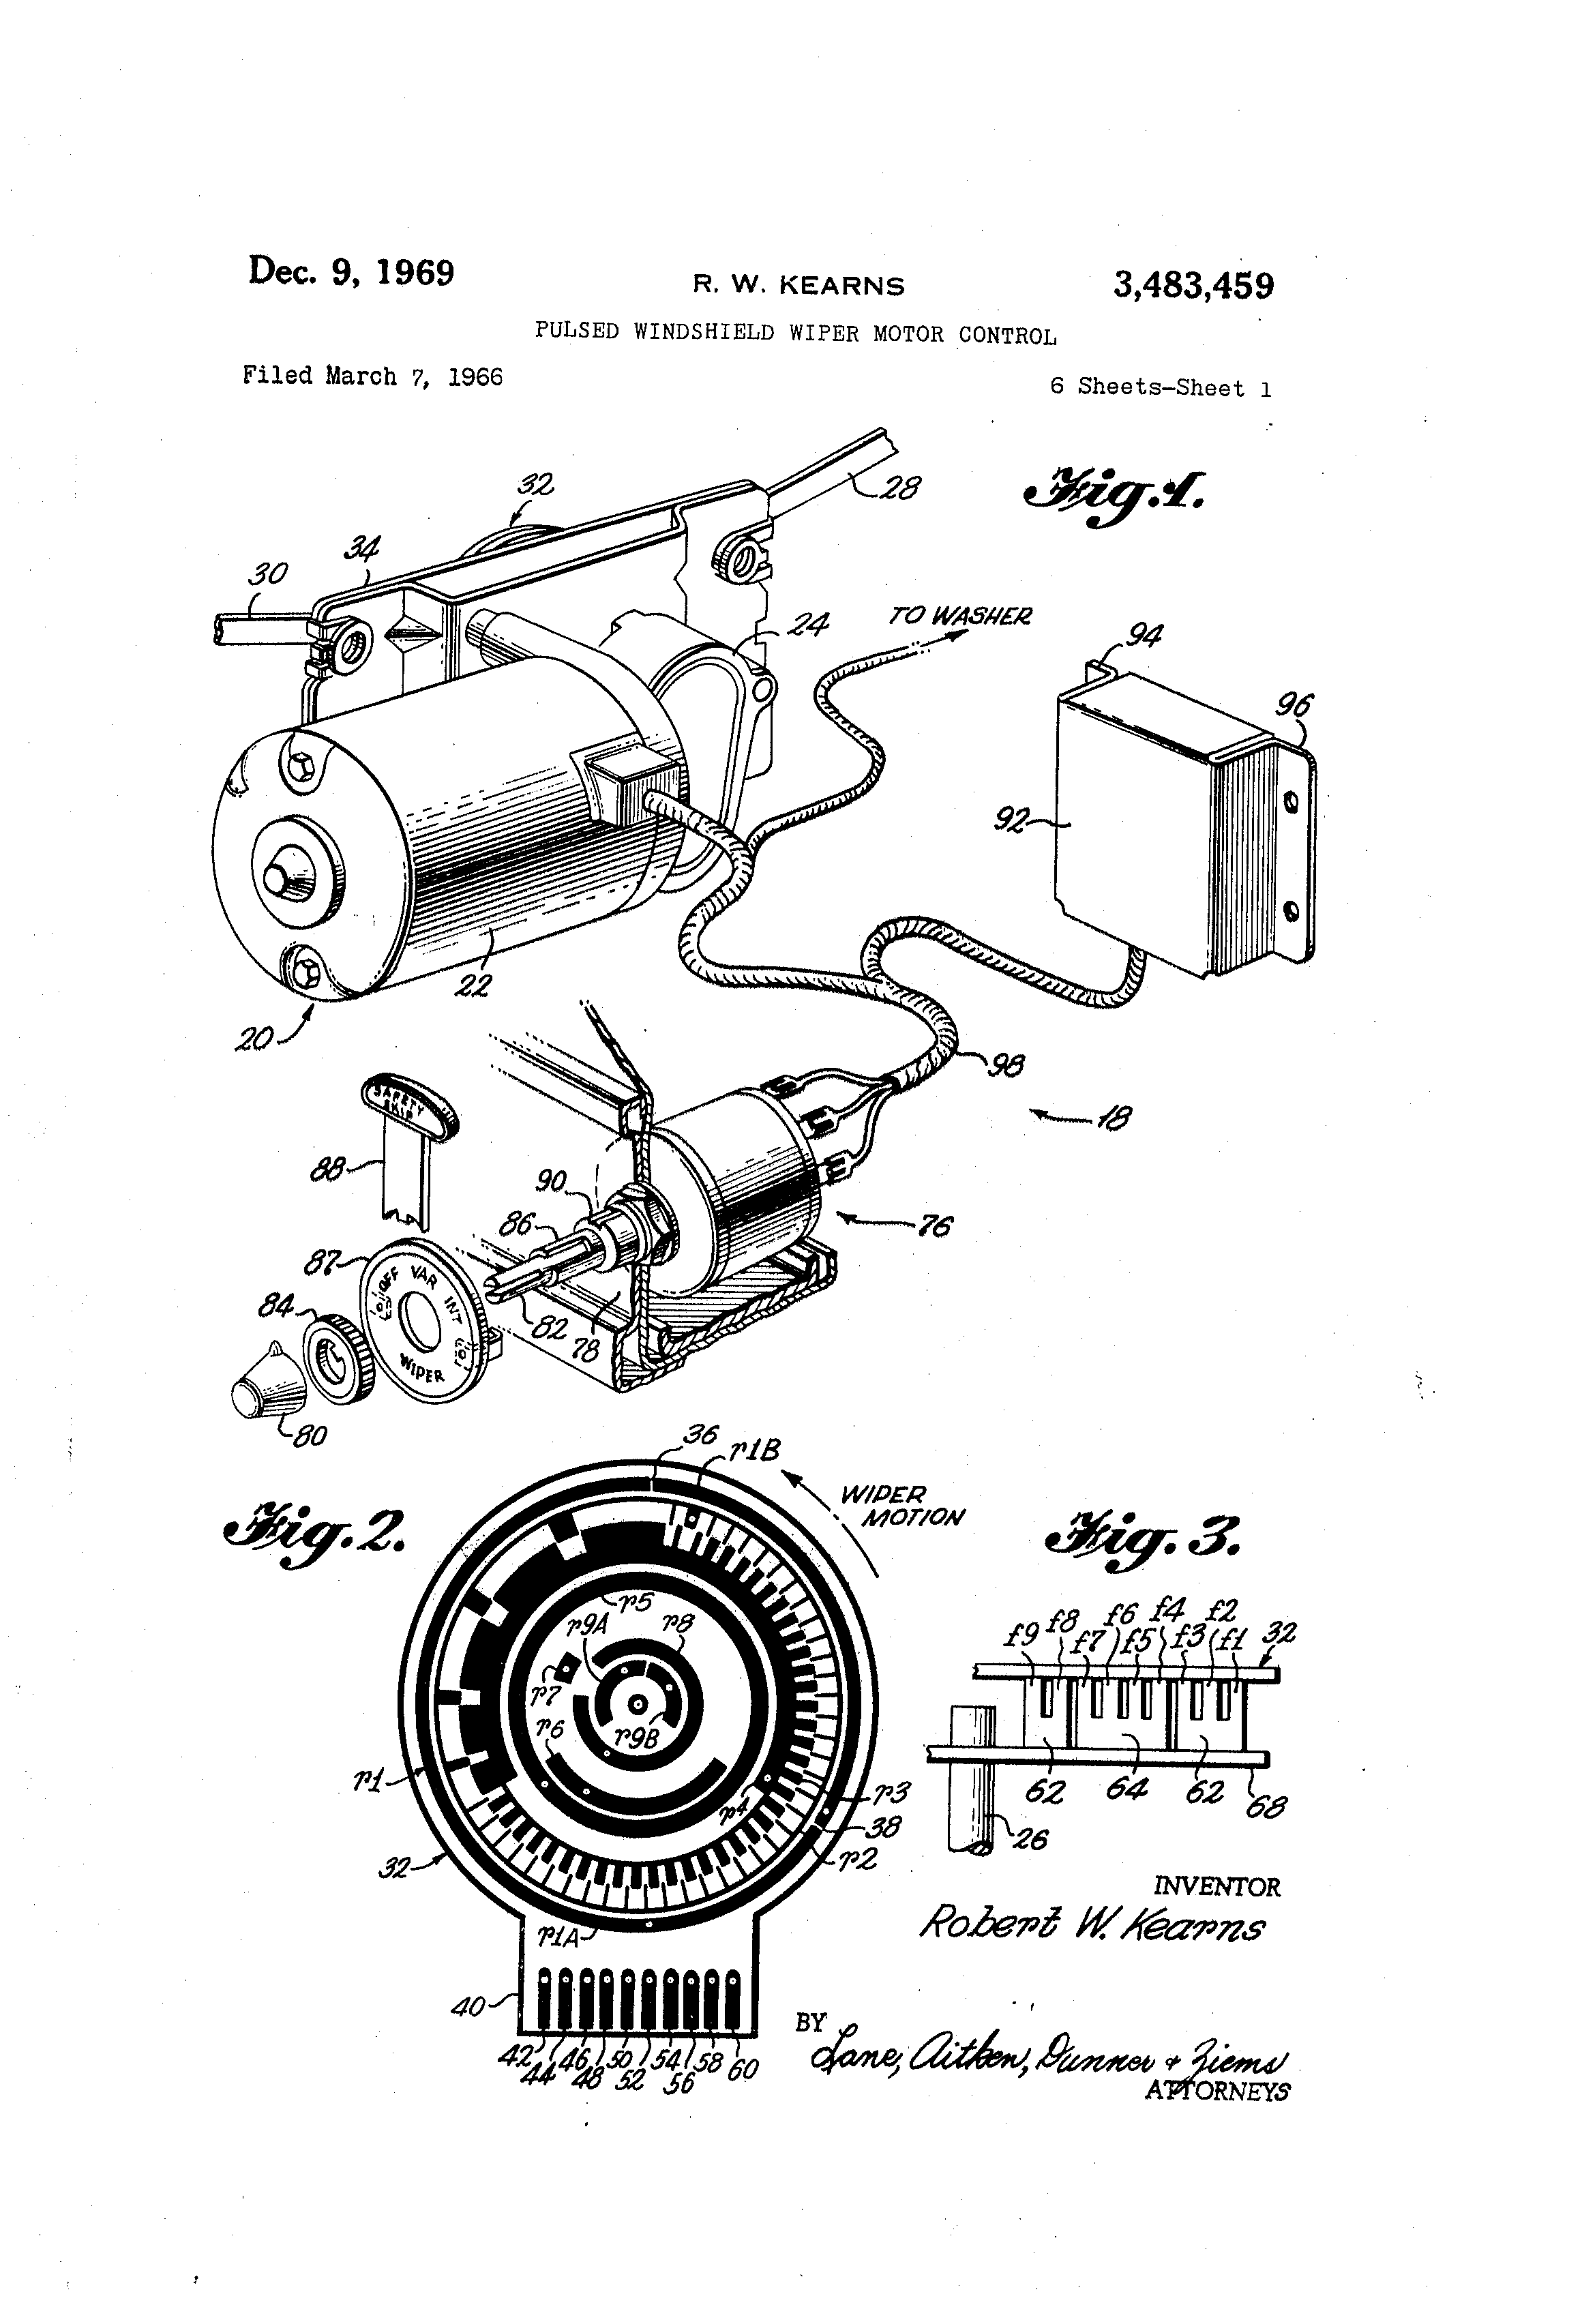 US3483459 0 patent us3483459 pulsed windshield wiper motor control google gmf electric motor wiring diagram at reclaimingppi.co